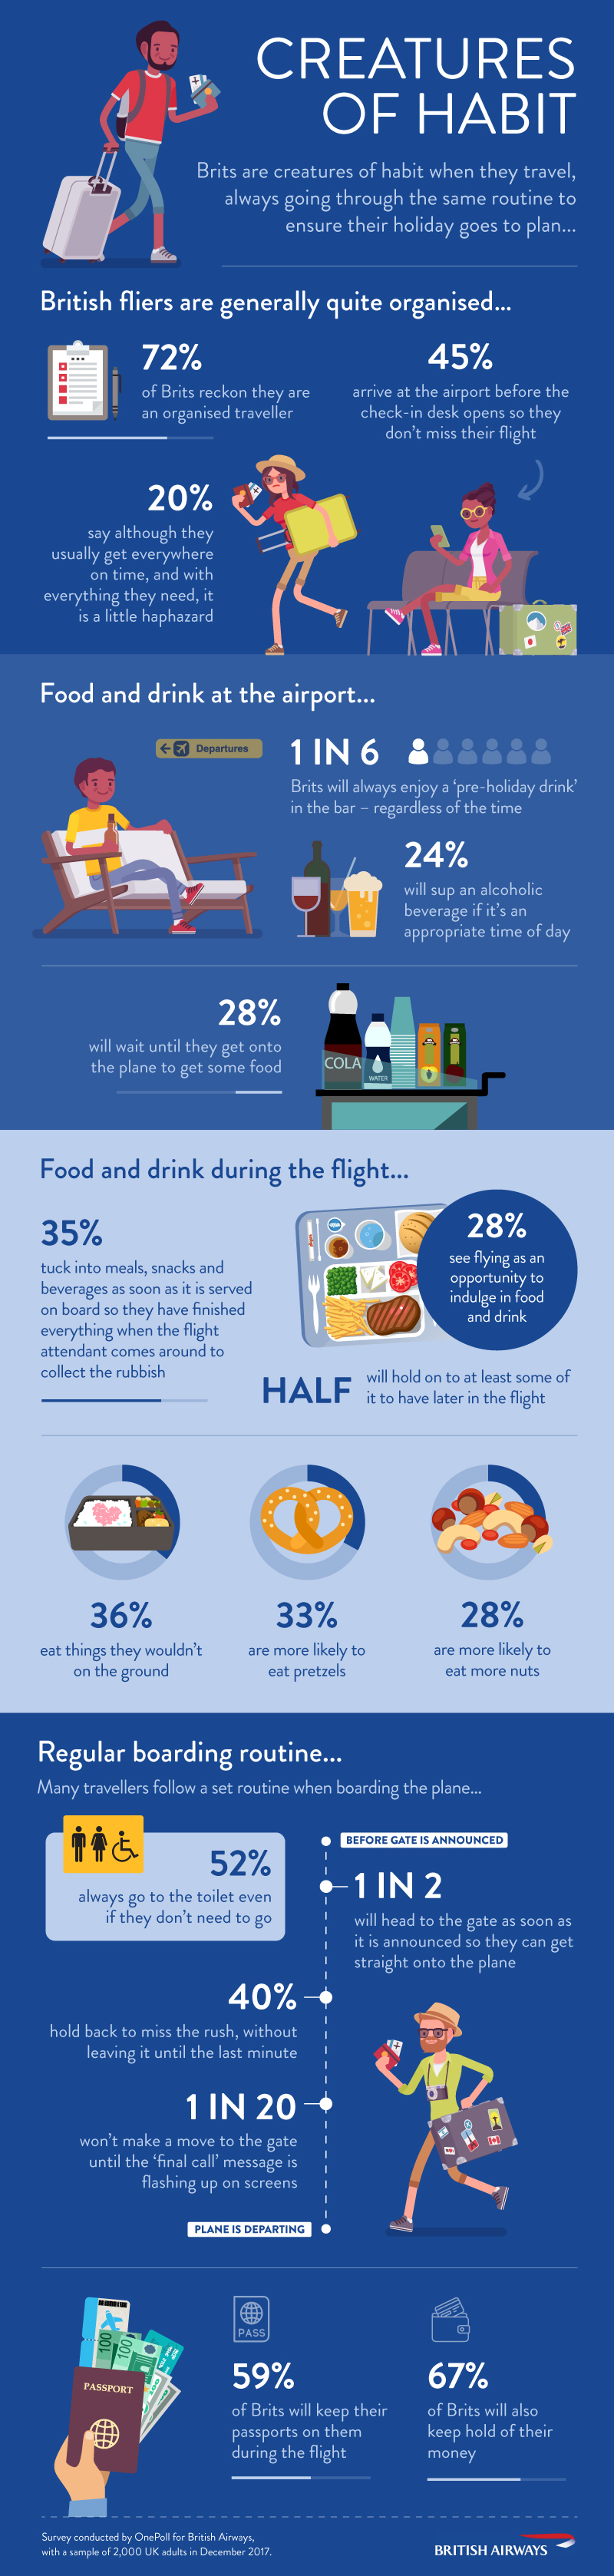 Brits Are Creatures Of Habit When They Travel, Study Finds ba british habits infographic final